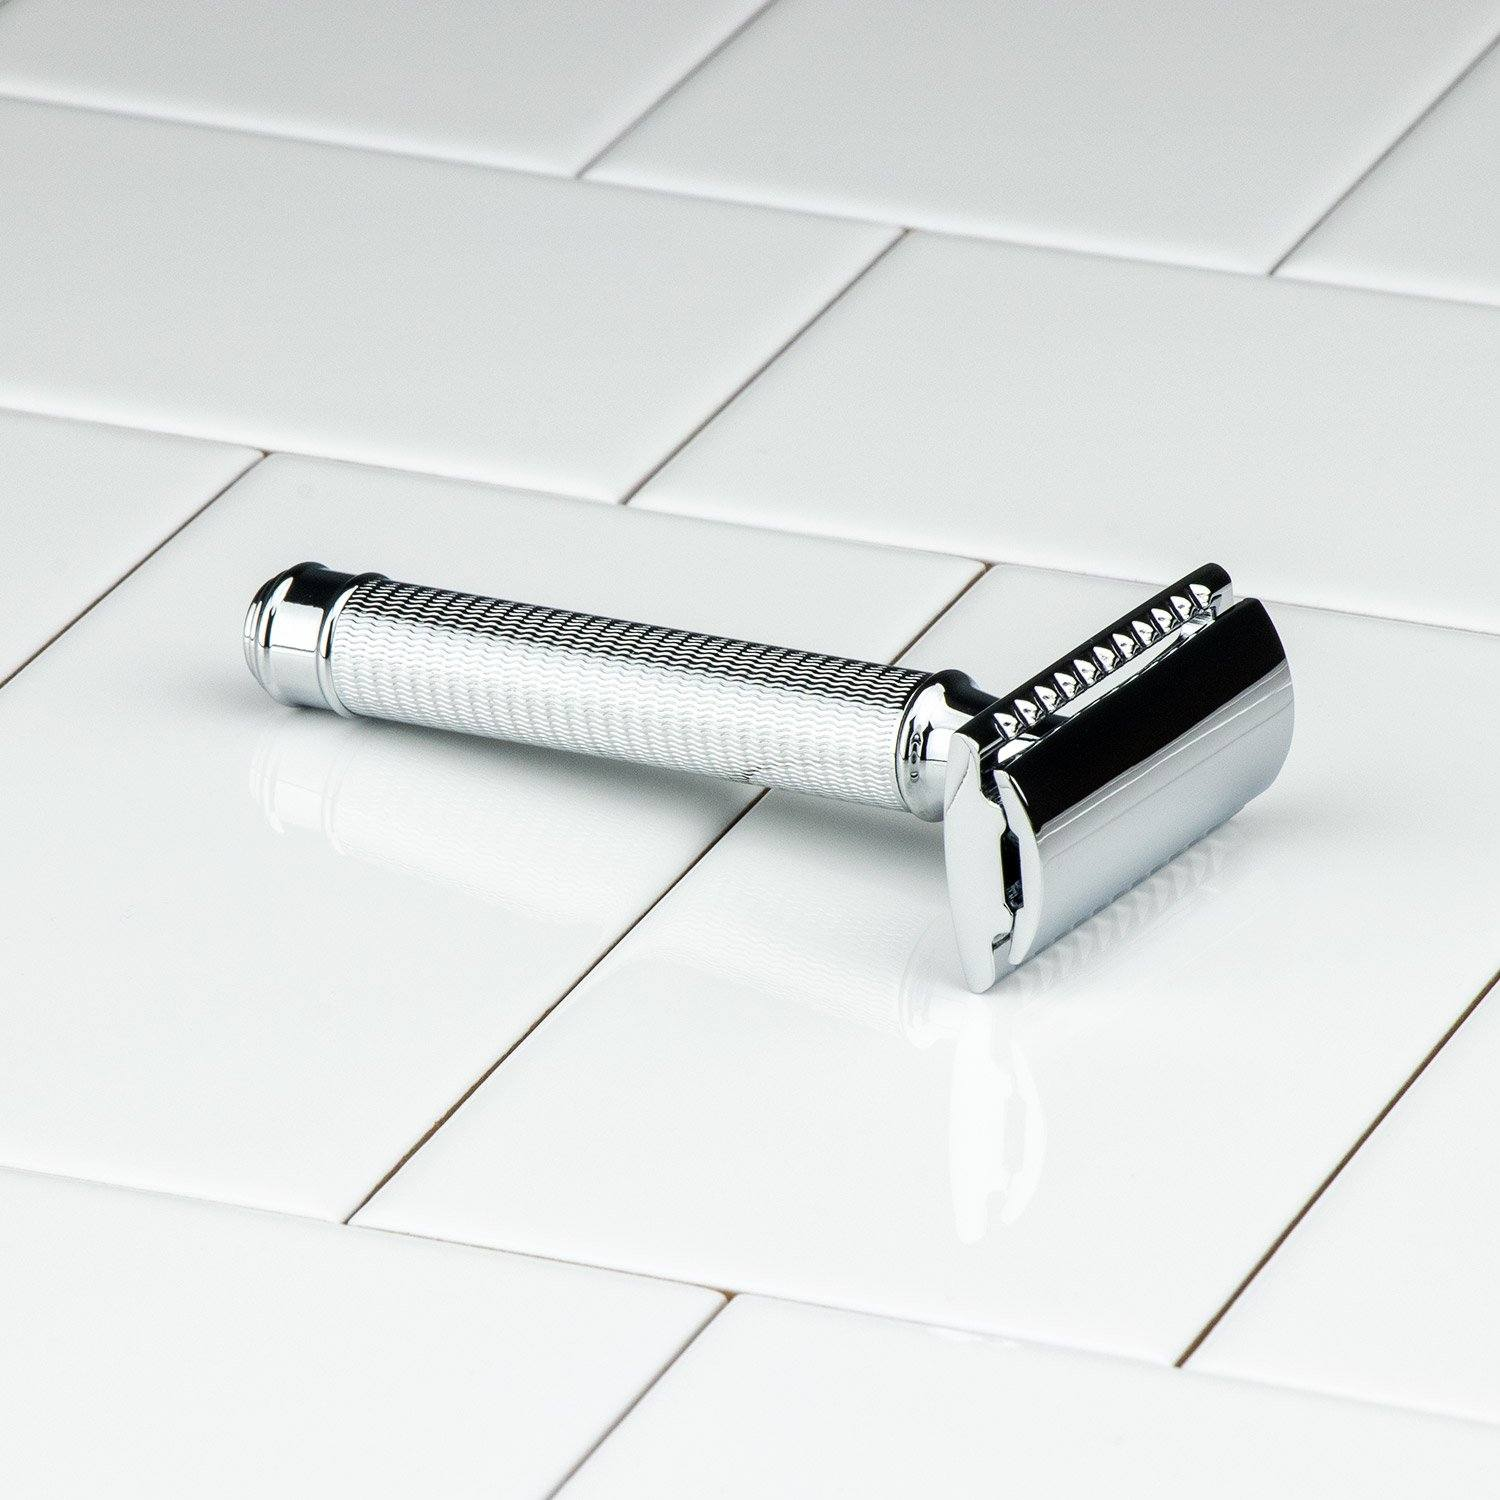 Hoxton Shave Co. Knurl Handle DE Safety Razor